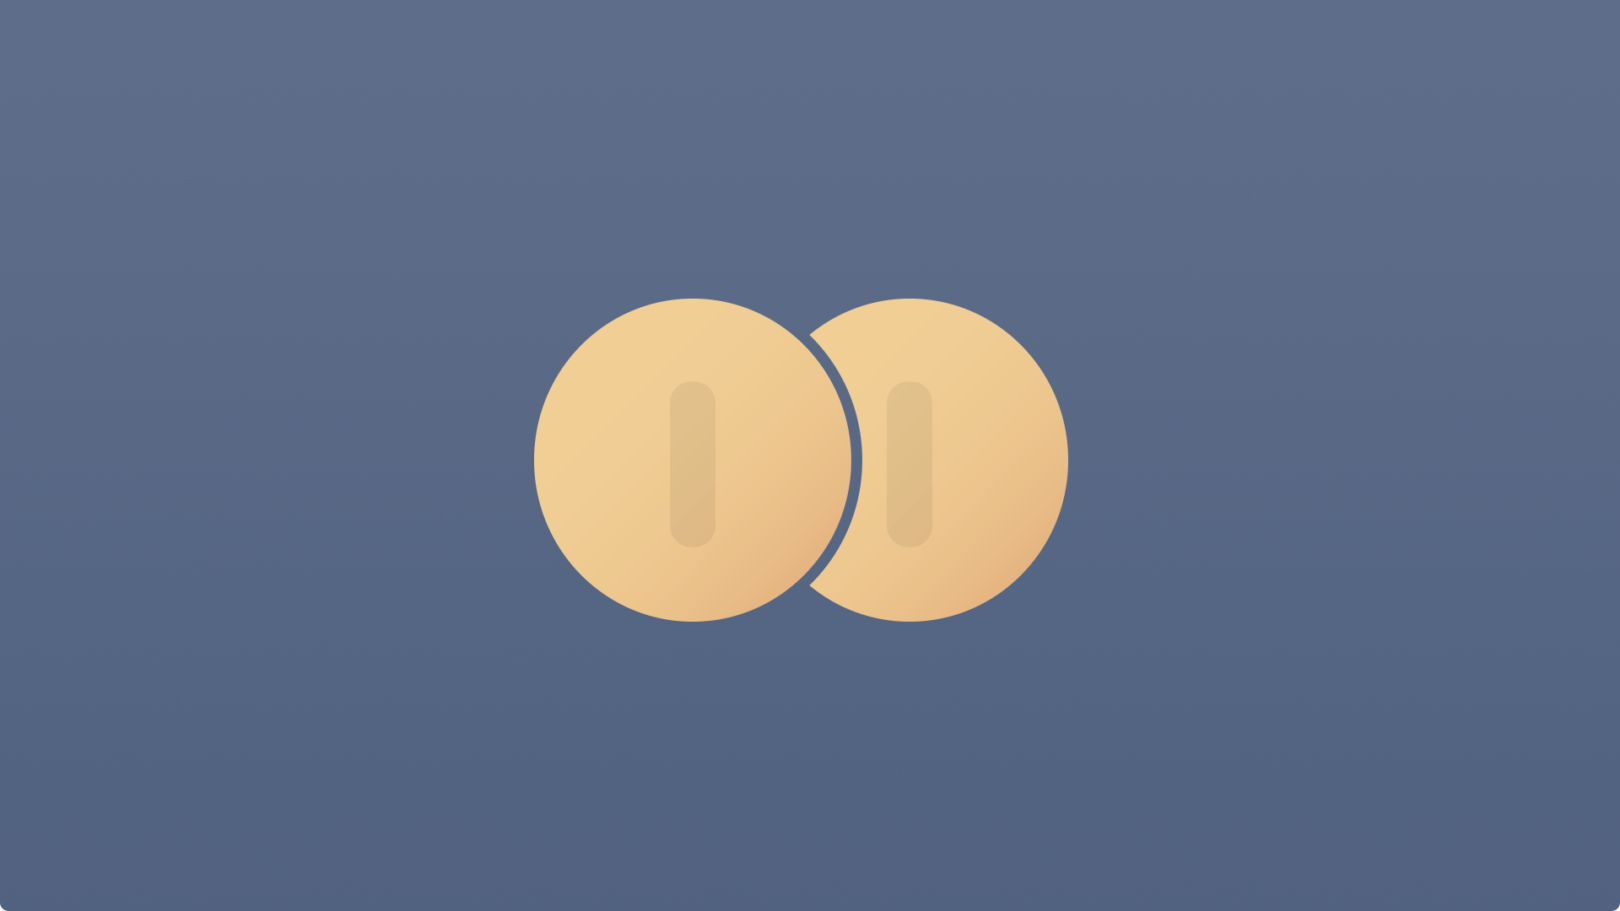 Two coins, representing gamification rewards